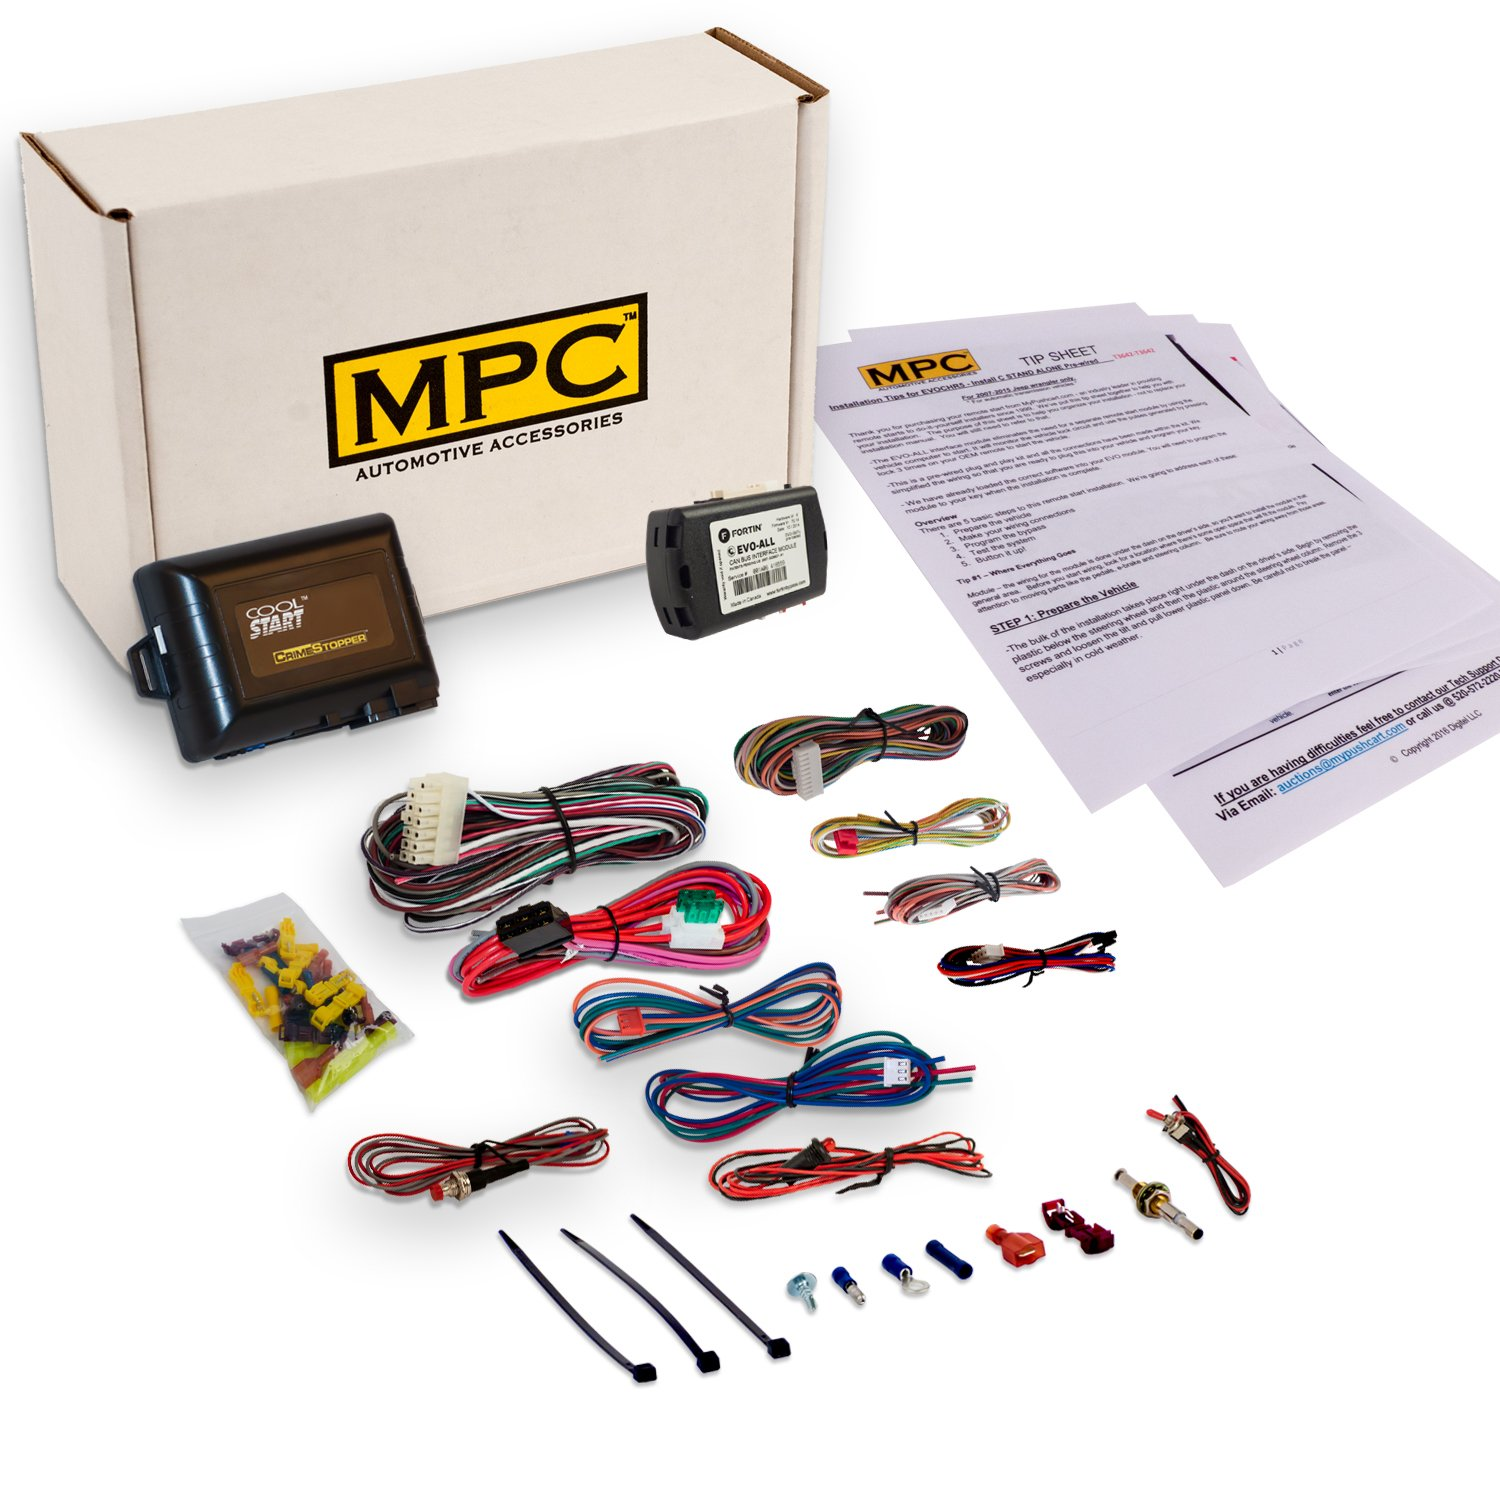 MPC Complete Add-on Remote Start For 2014-2016 Toyota Corolla w/Key to Start - Includes Bypass Module - Uses Factory Remotes